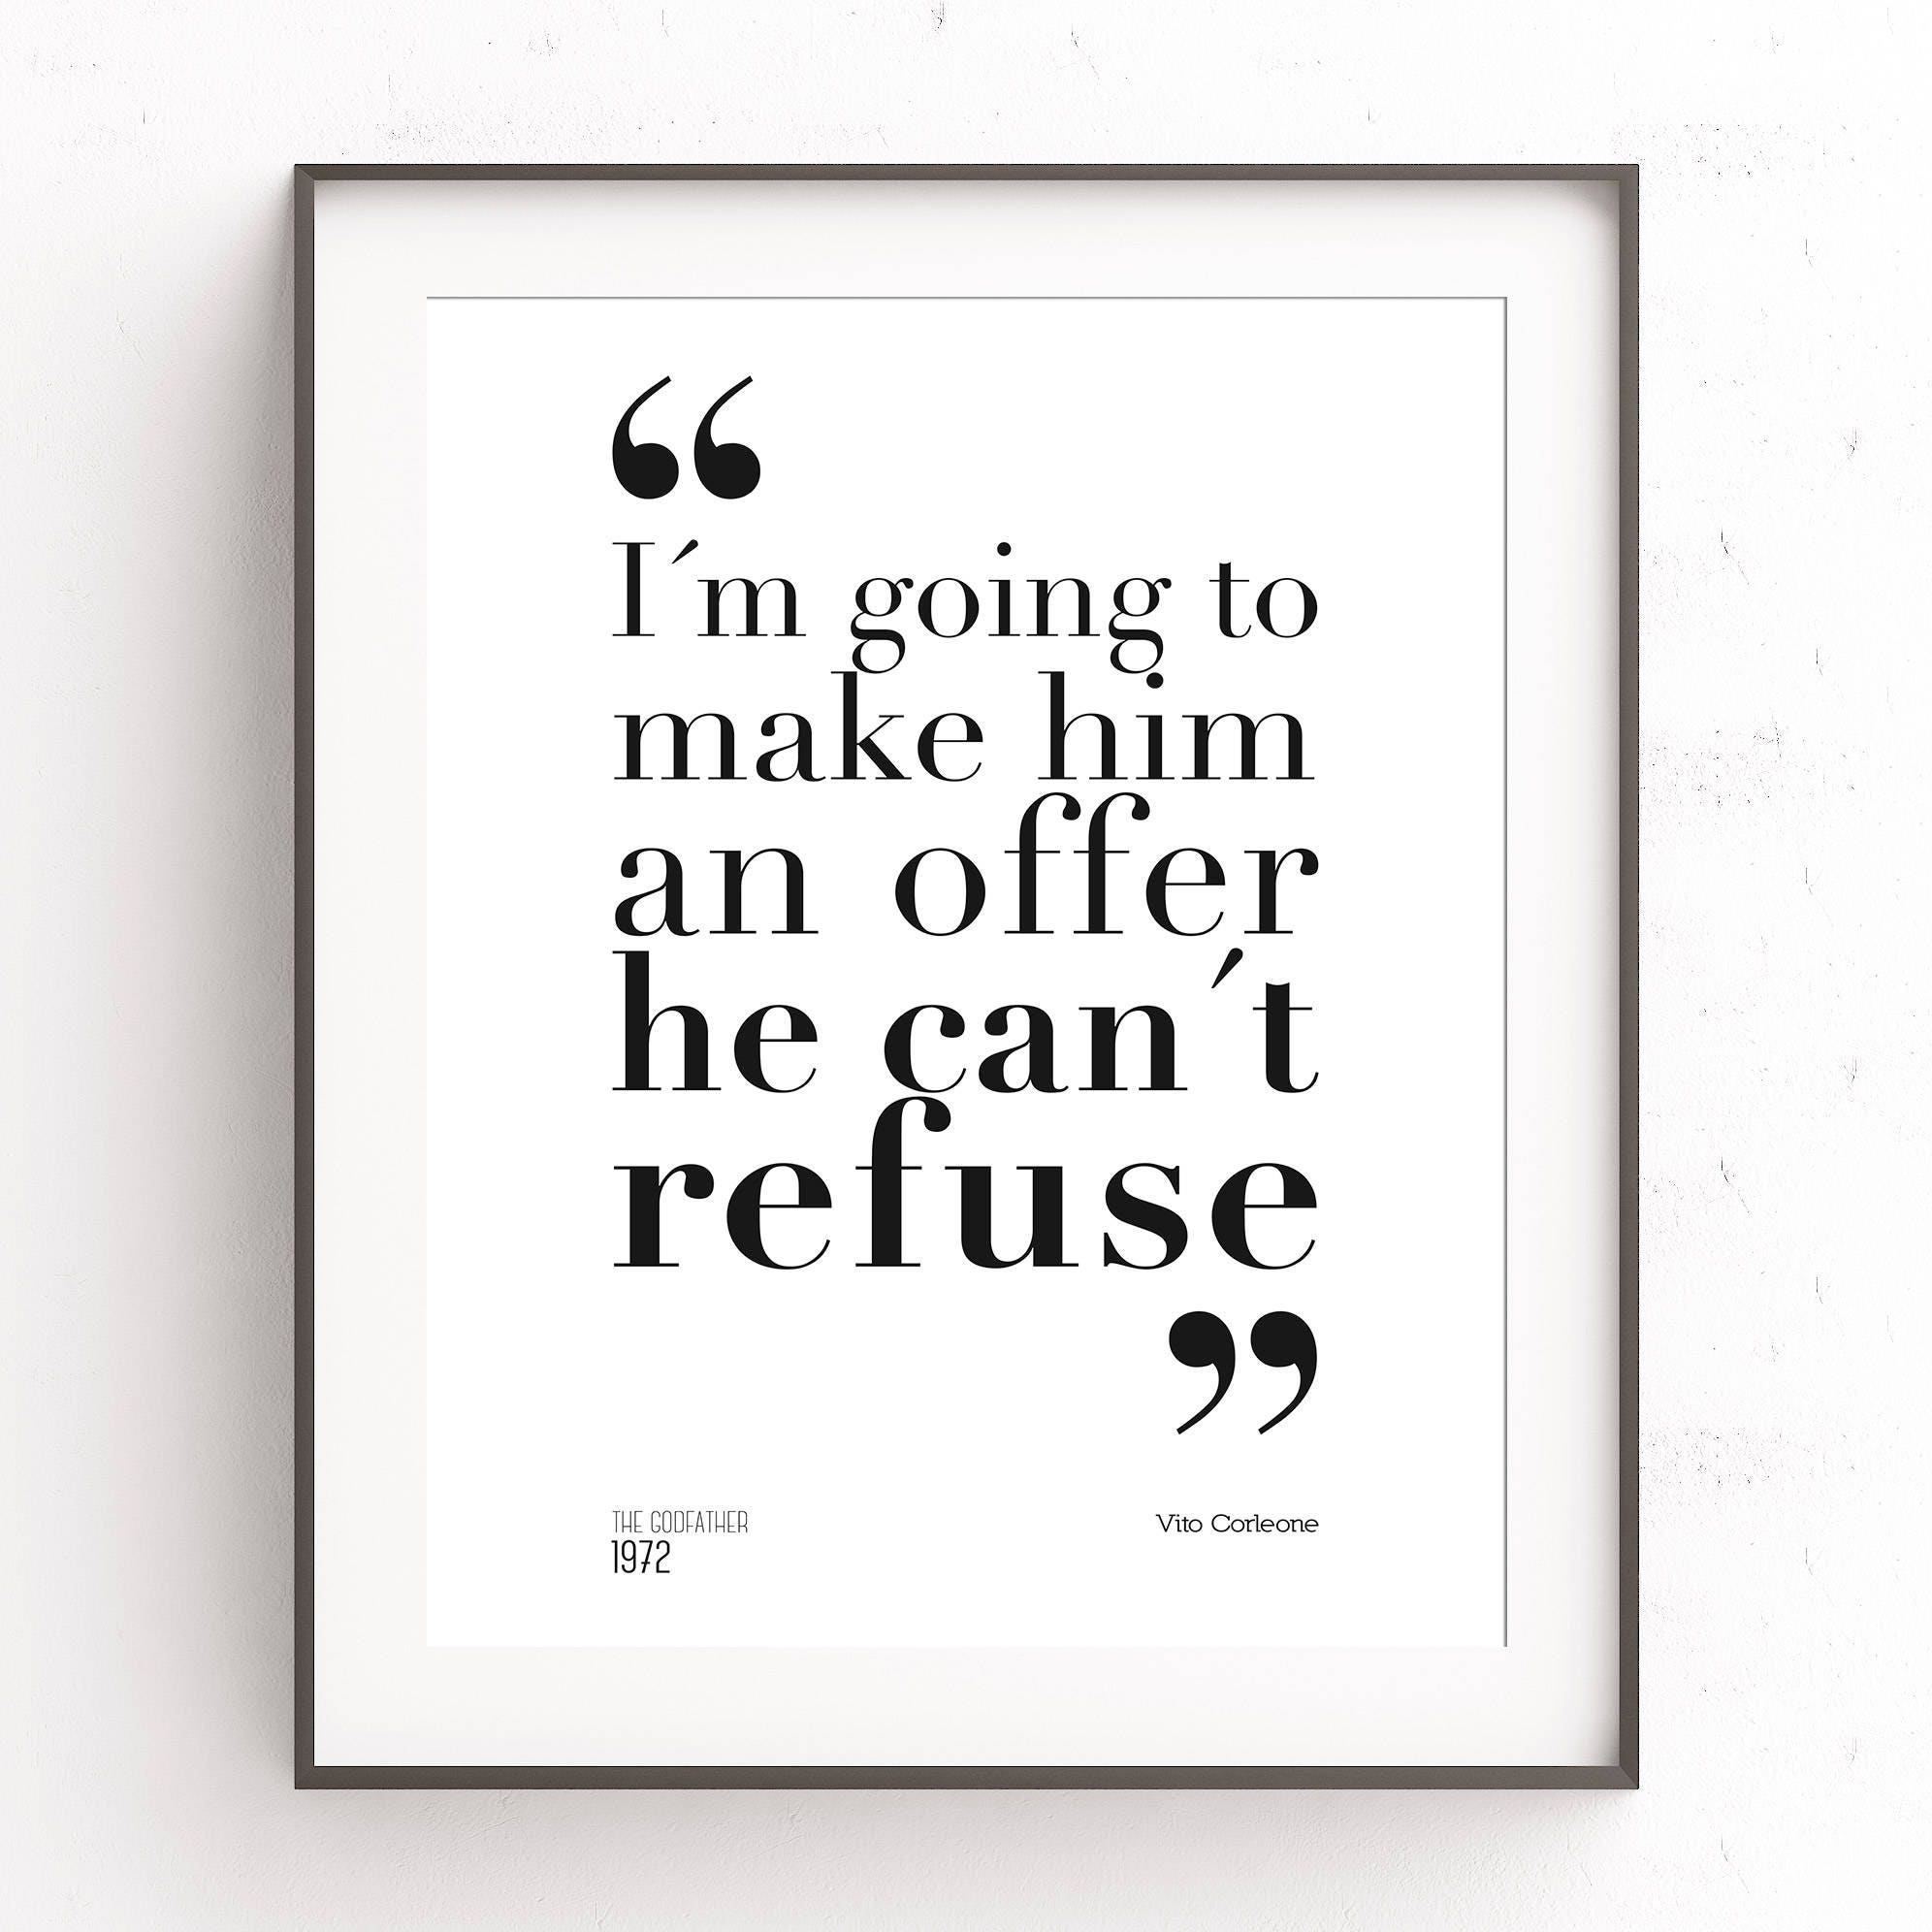 The Godfather quote. Im going to make him an offer he cant